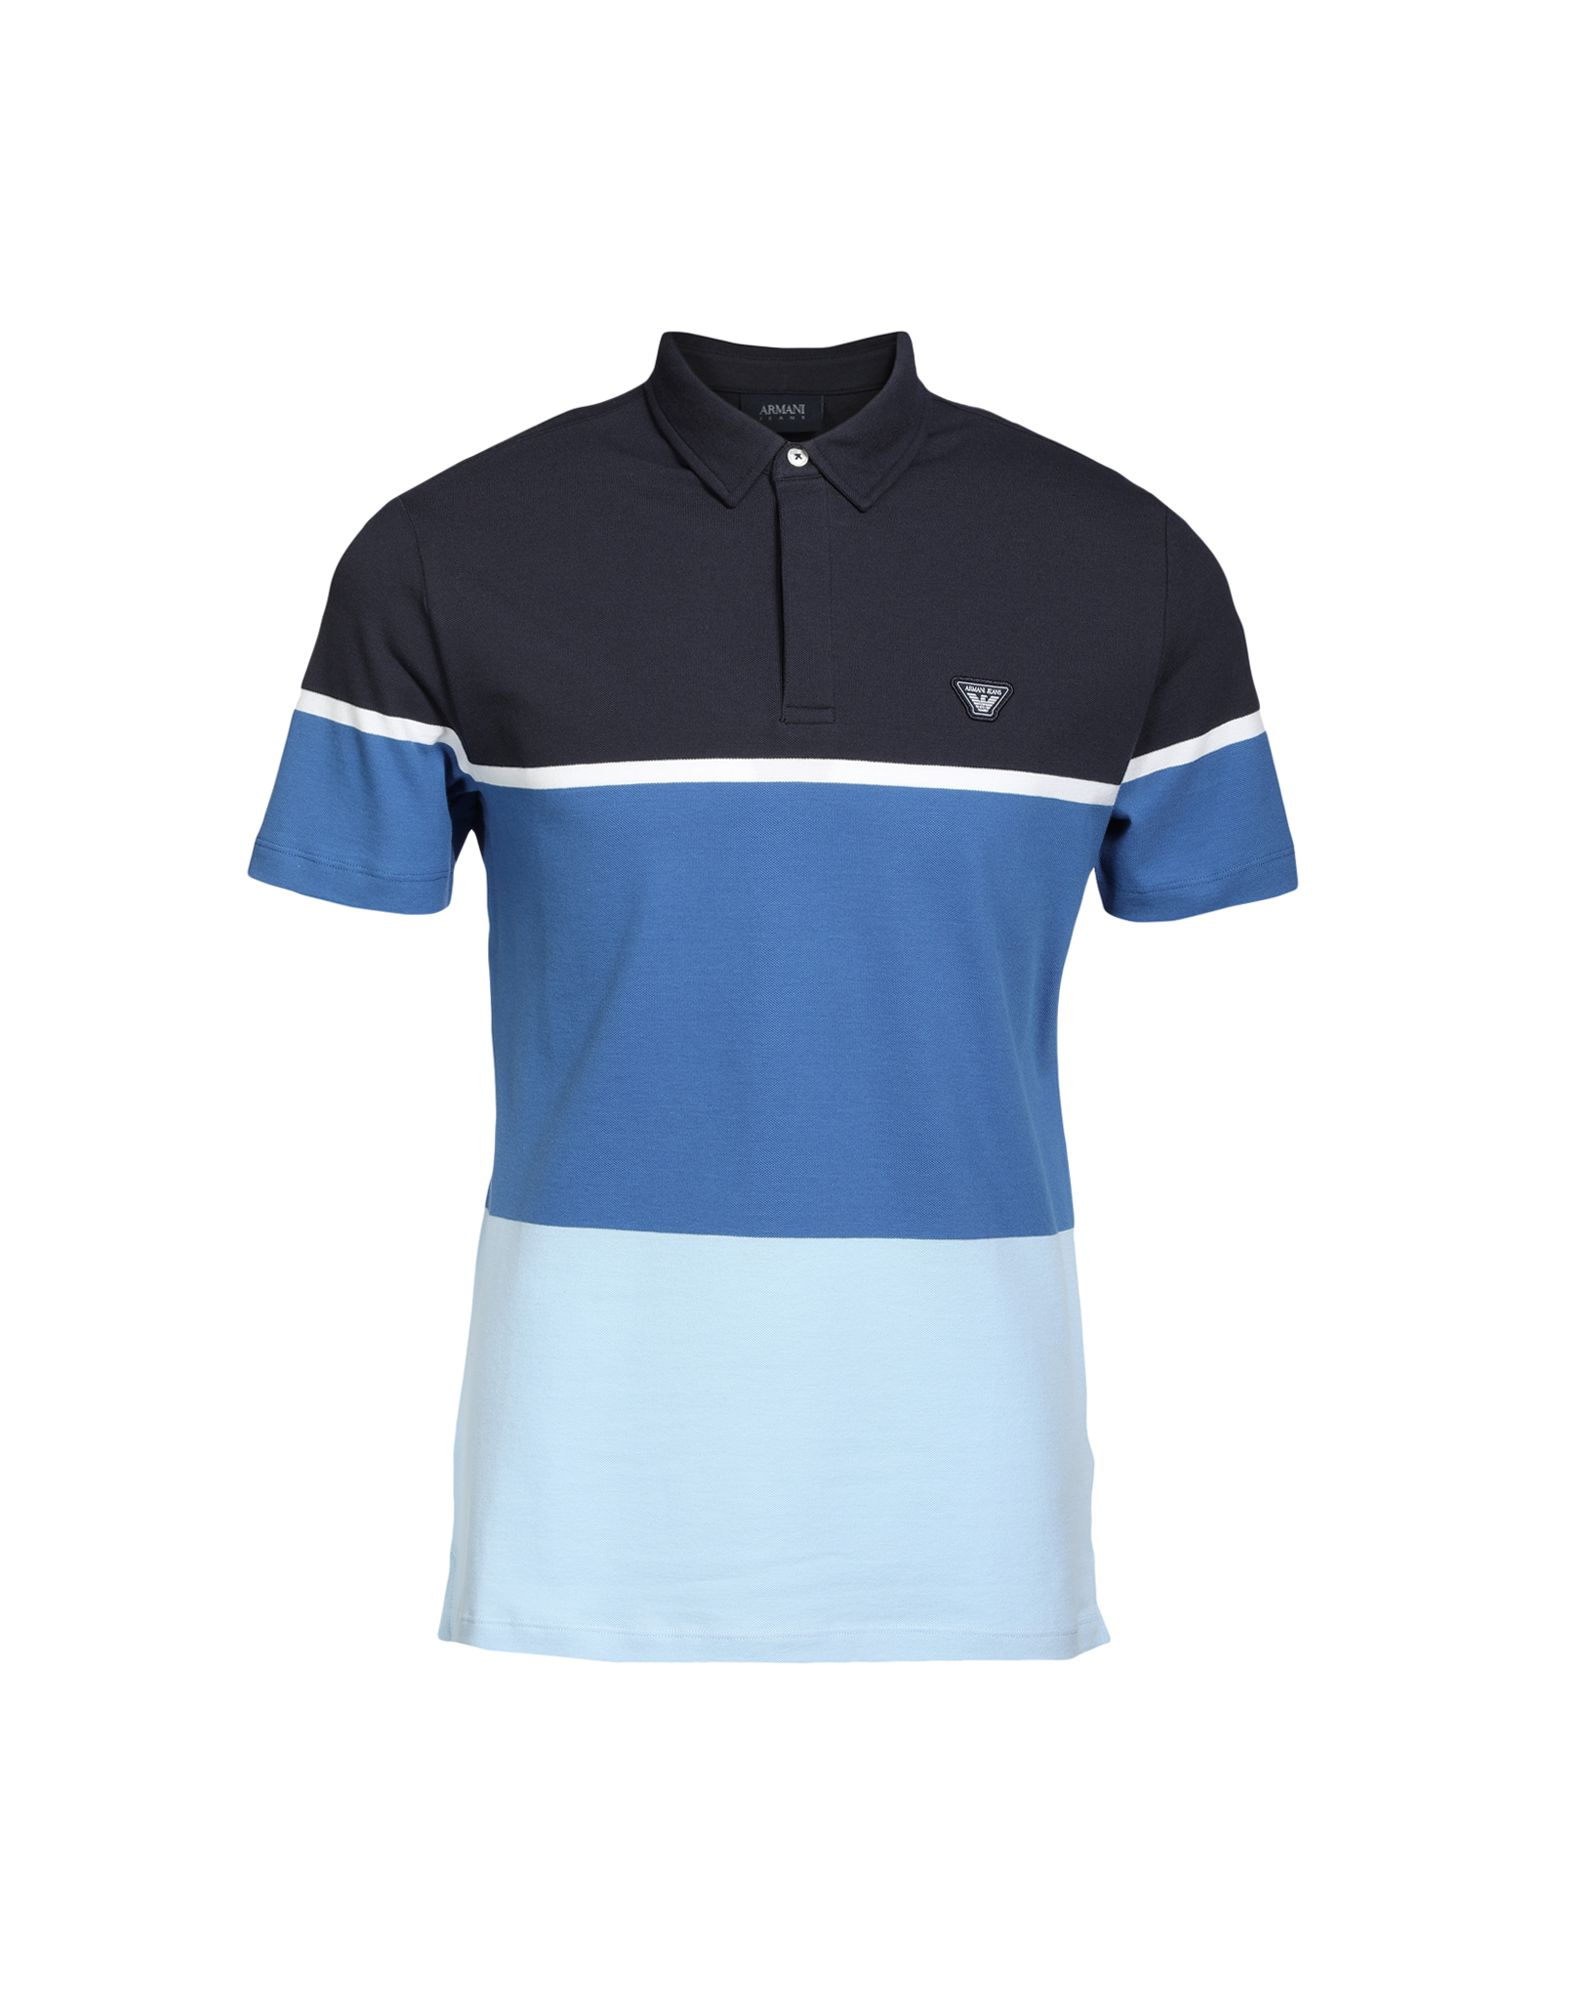 e0a5303db ARMANI JEANS Polo shirts. piqué, multicolor pattern, polo collar, short  sleeves, front closure, button closing, no pockets, logo, stretch, small  sized.